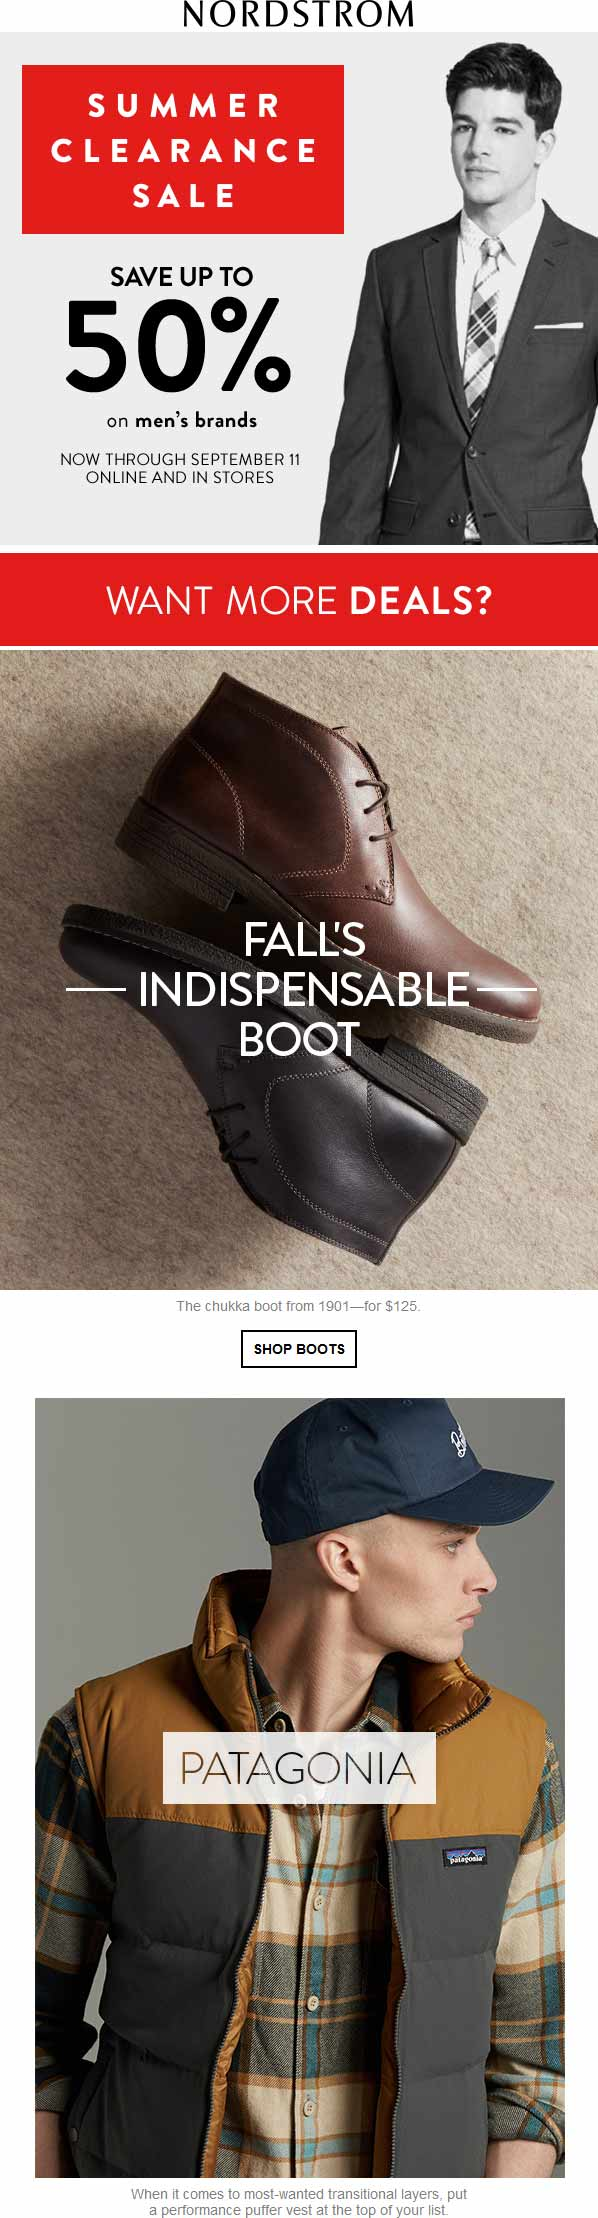 Nordstrom.com Promo Coupon Mens 50% clearance sale going on at Nordstrom, ditto online